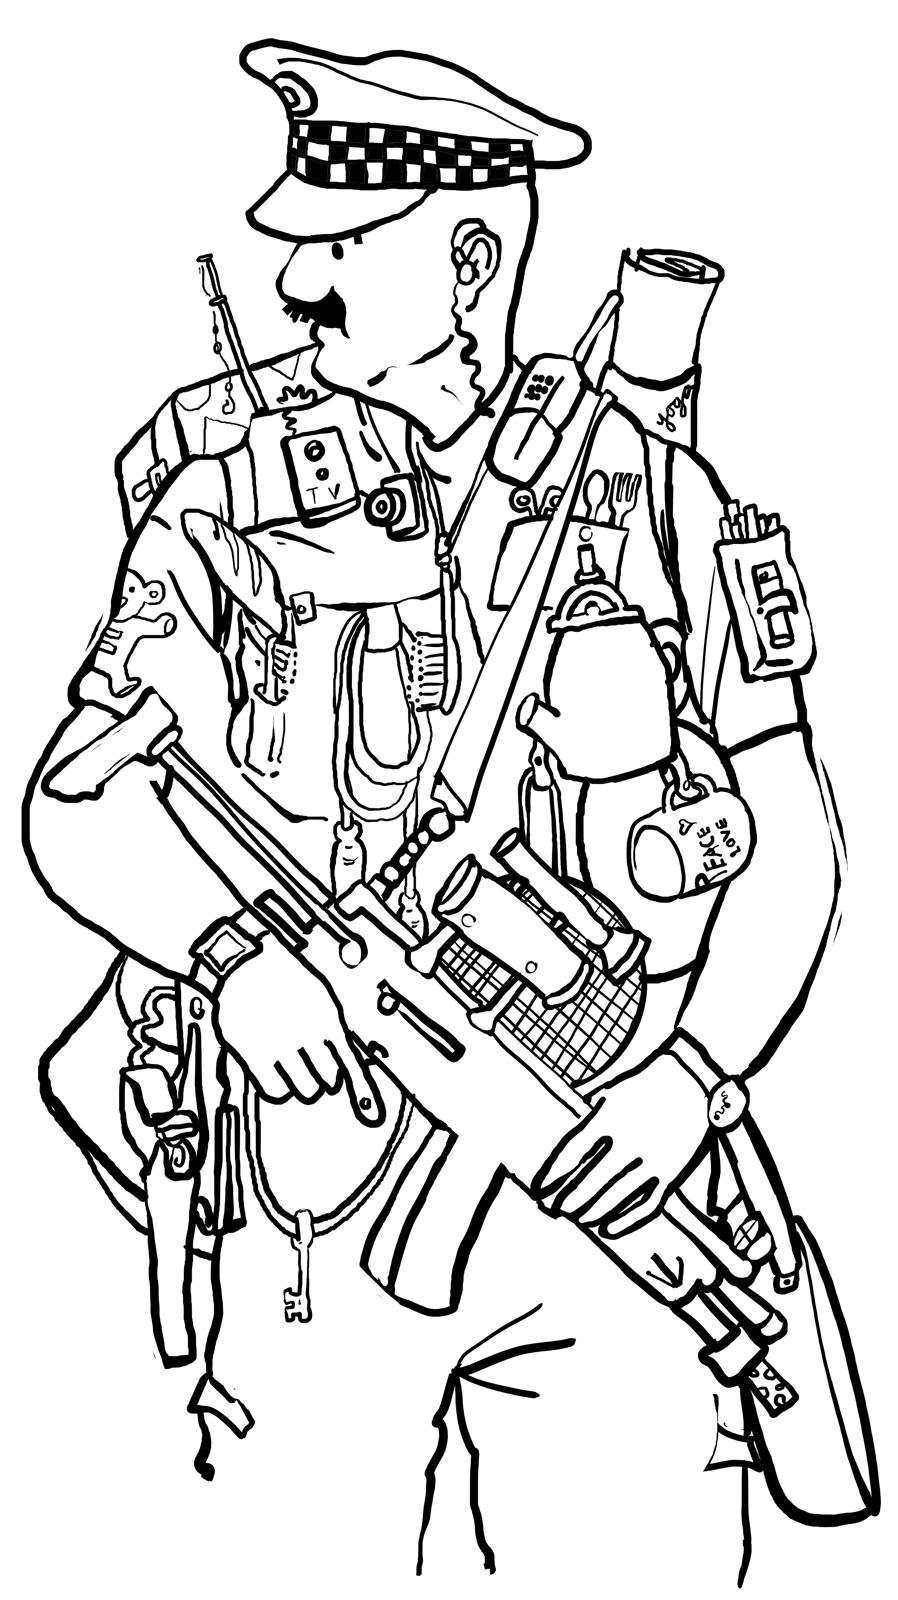 drawing of a police officer policeman drawing clipart best police a officer of drawing